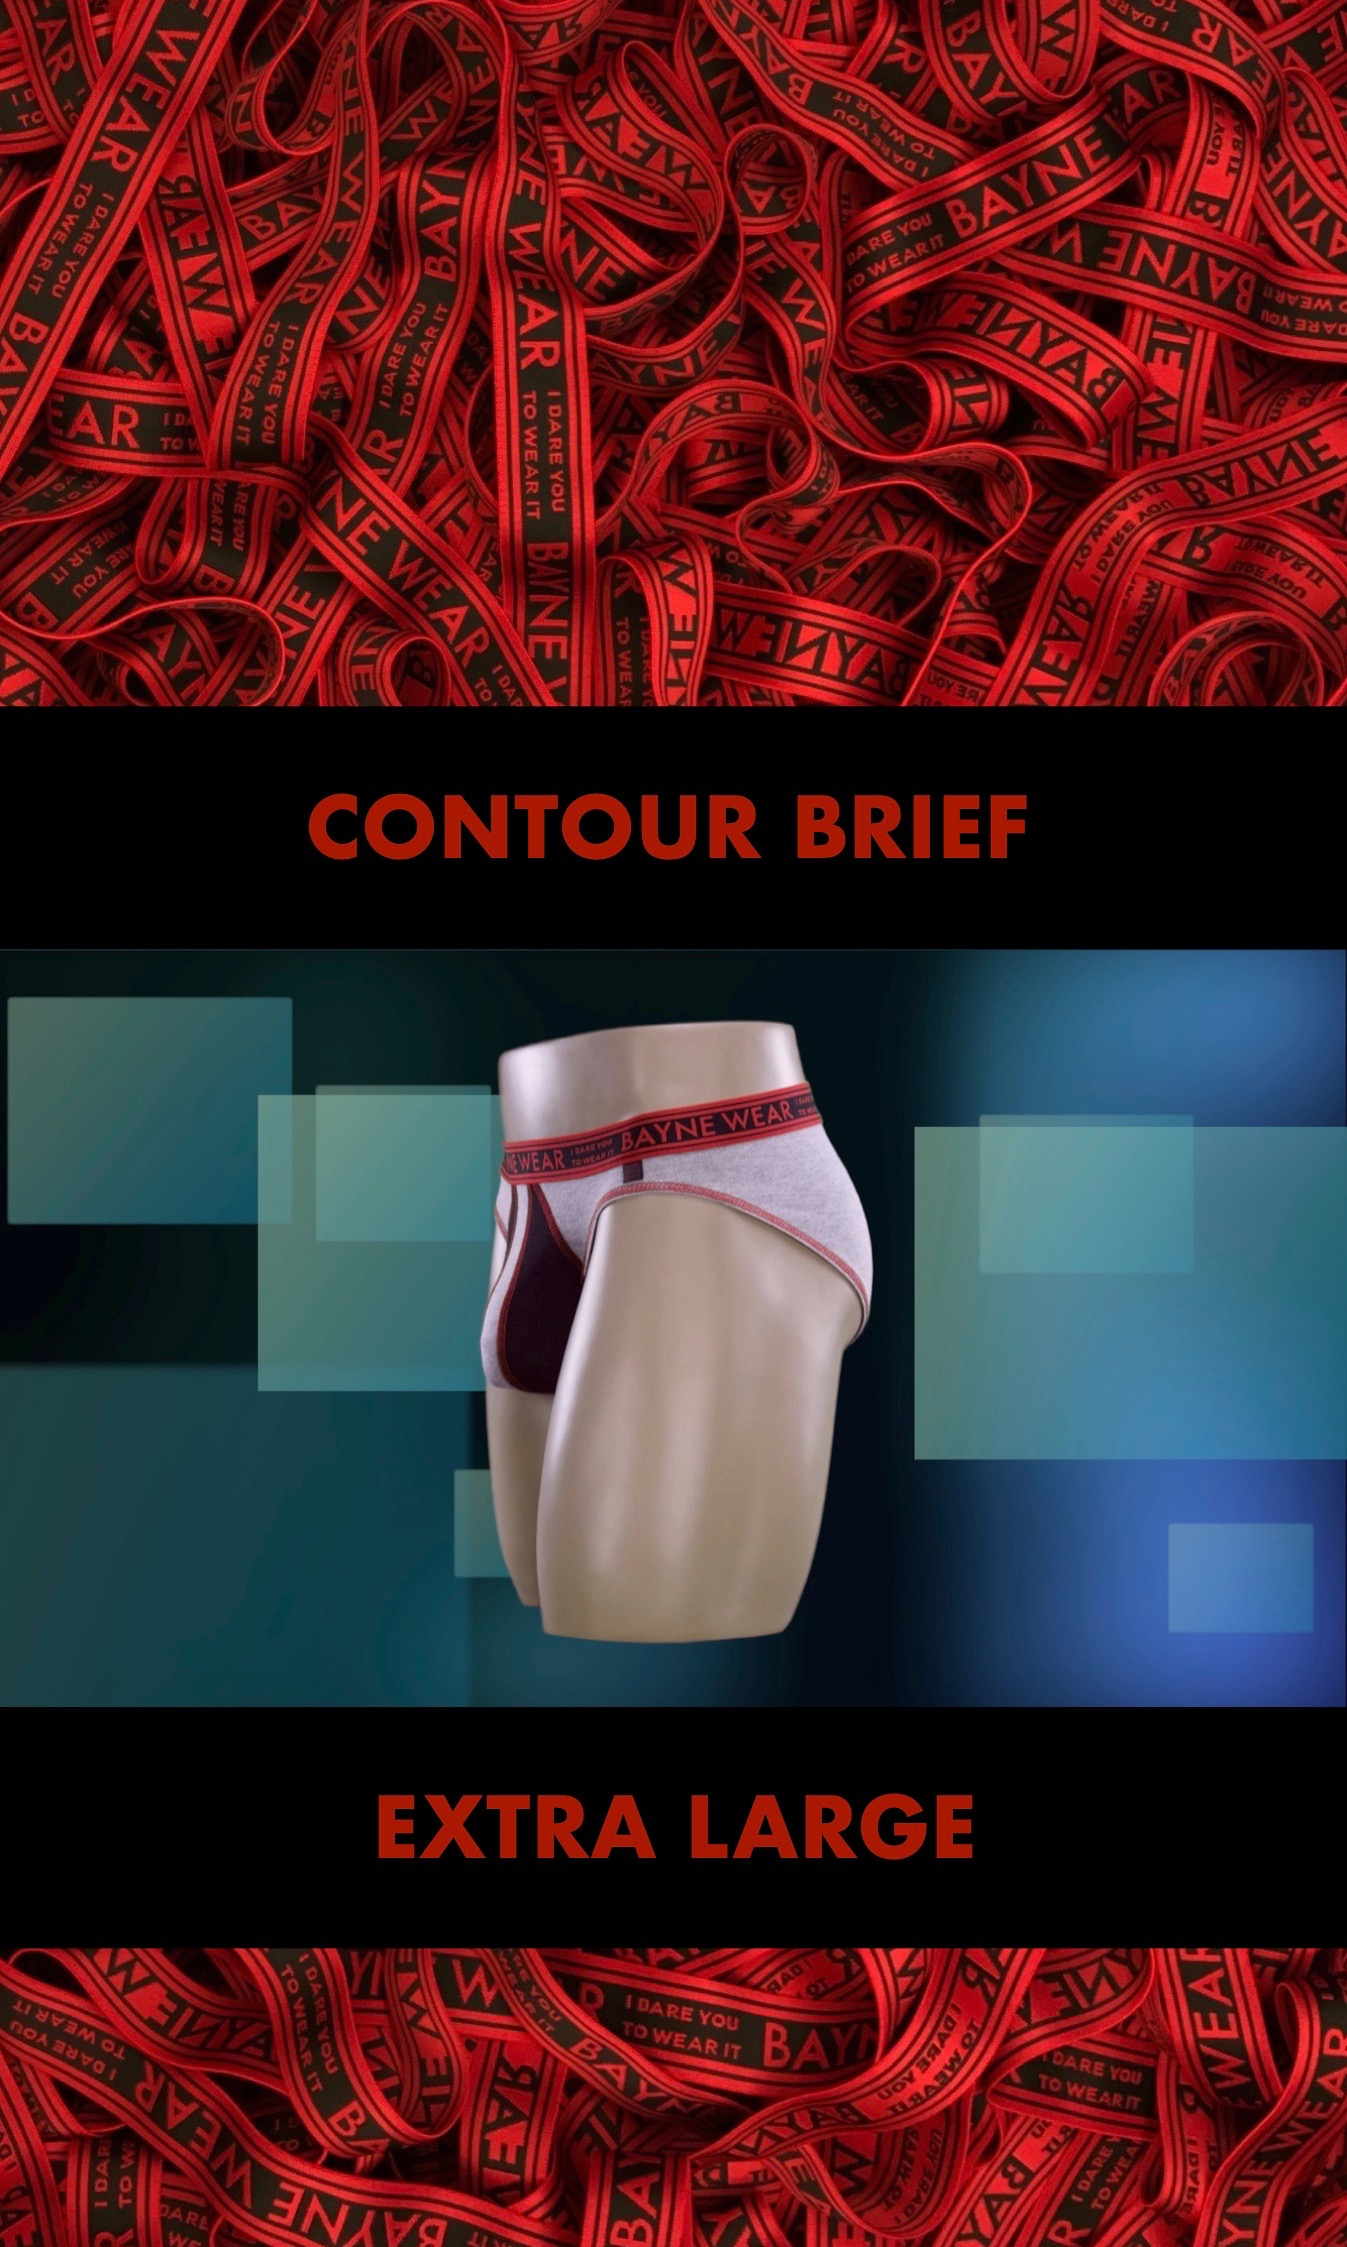 GARMENT TAG 2018 BACK CONTOUR BRIEF EXTRA LARGE 2.jpg